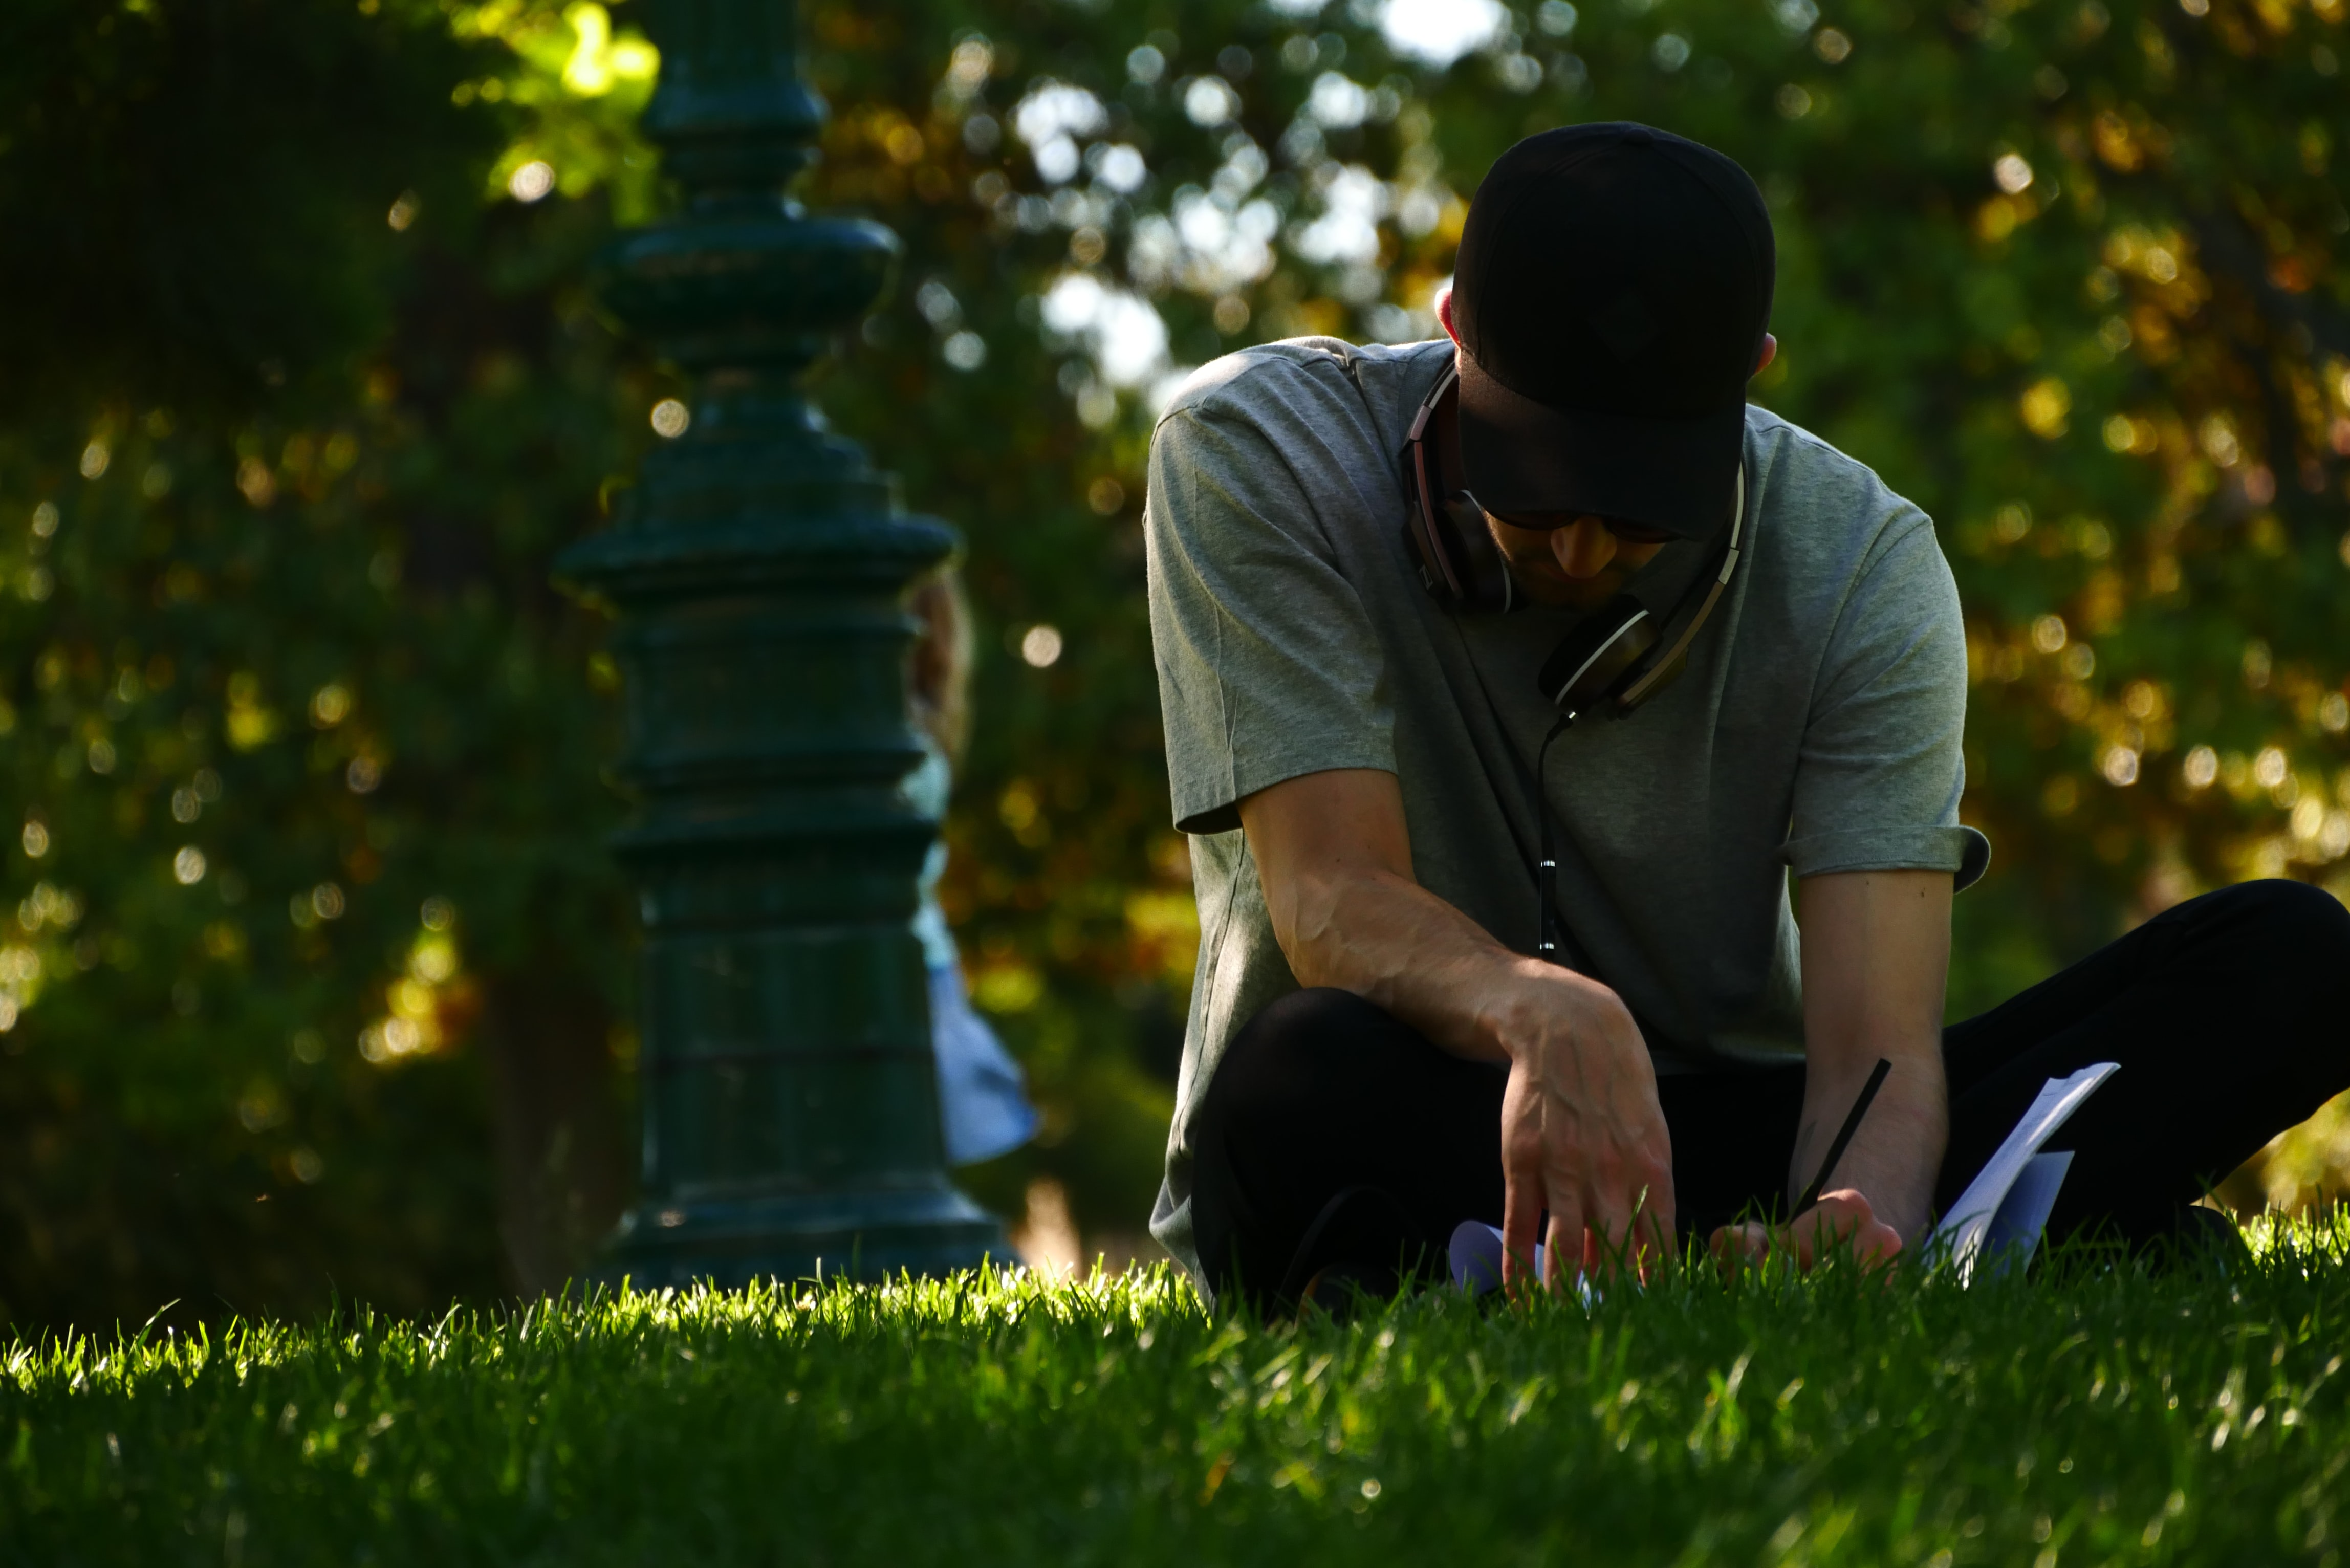 A man wearing headphones and a hat works in the grass